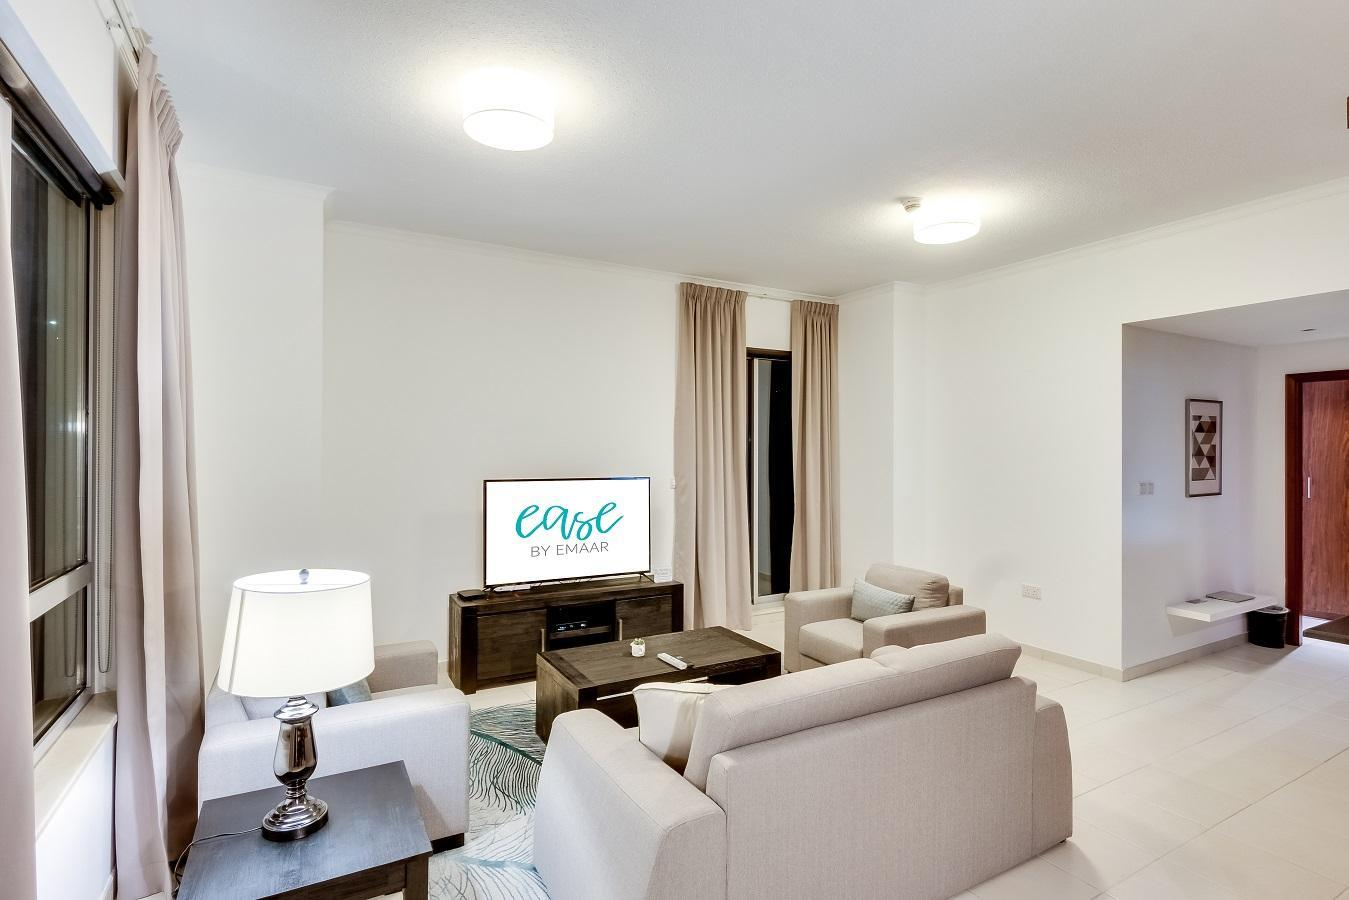 Orchard Ease By Emaar One Bedroom Apartment